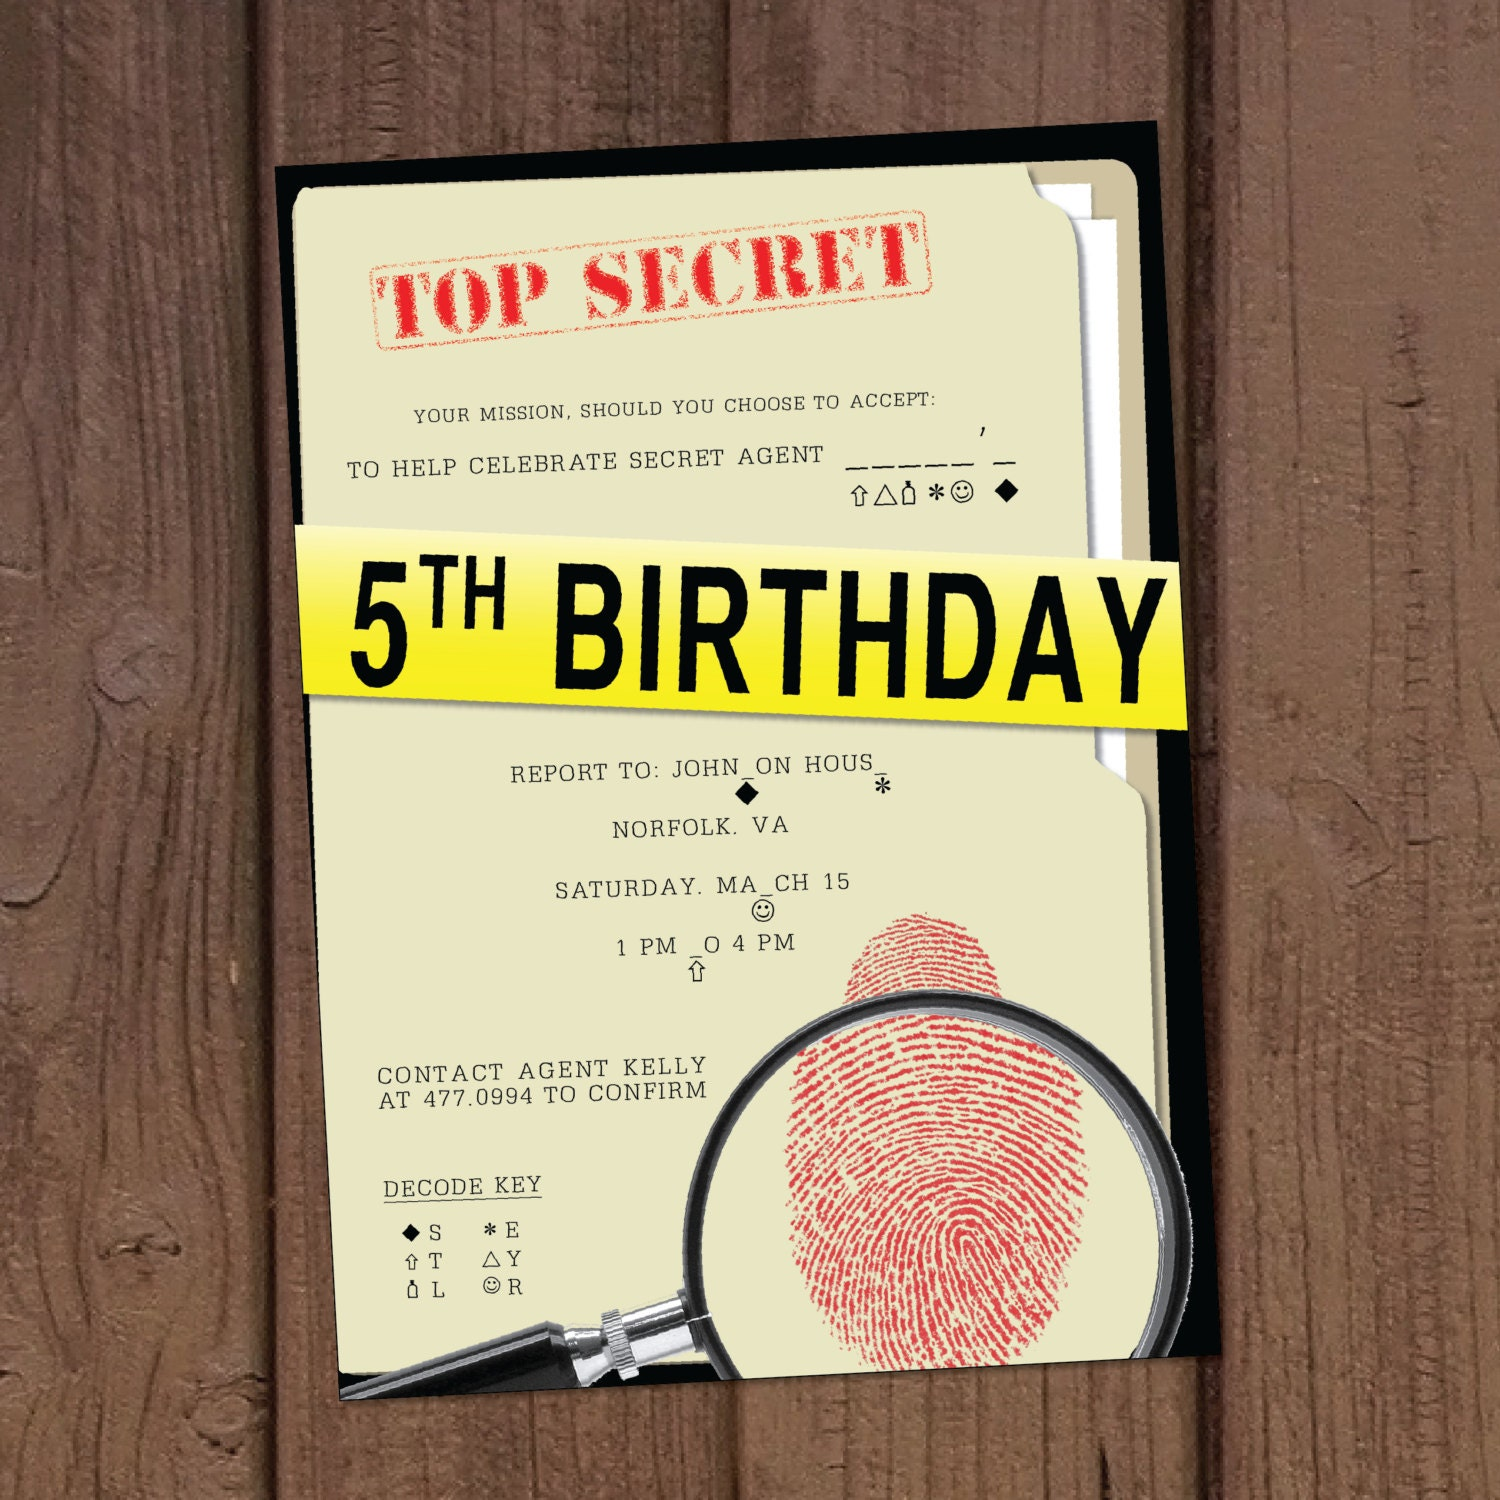 image relating to Spy Party Invitations Printable Free referred to as Magic formula Representative Birthday Occasion Invites Spy Bash Options